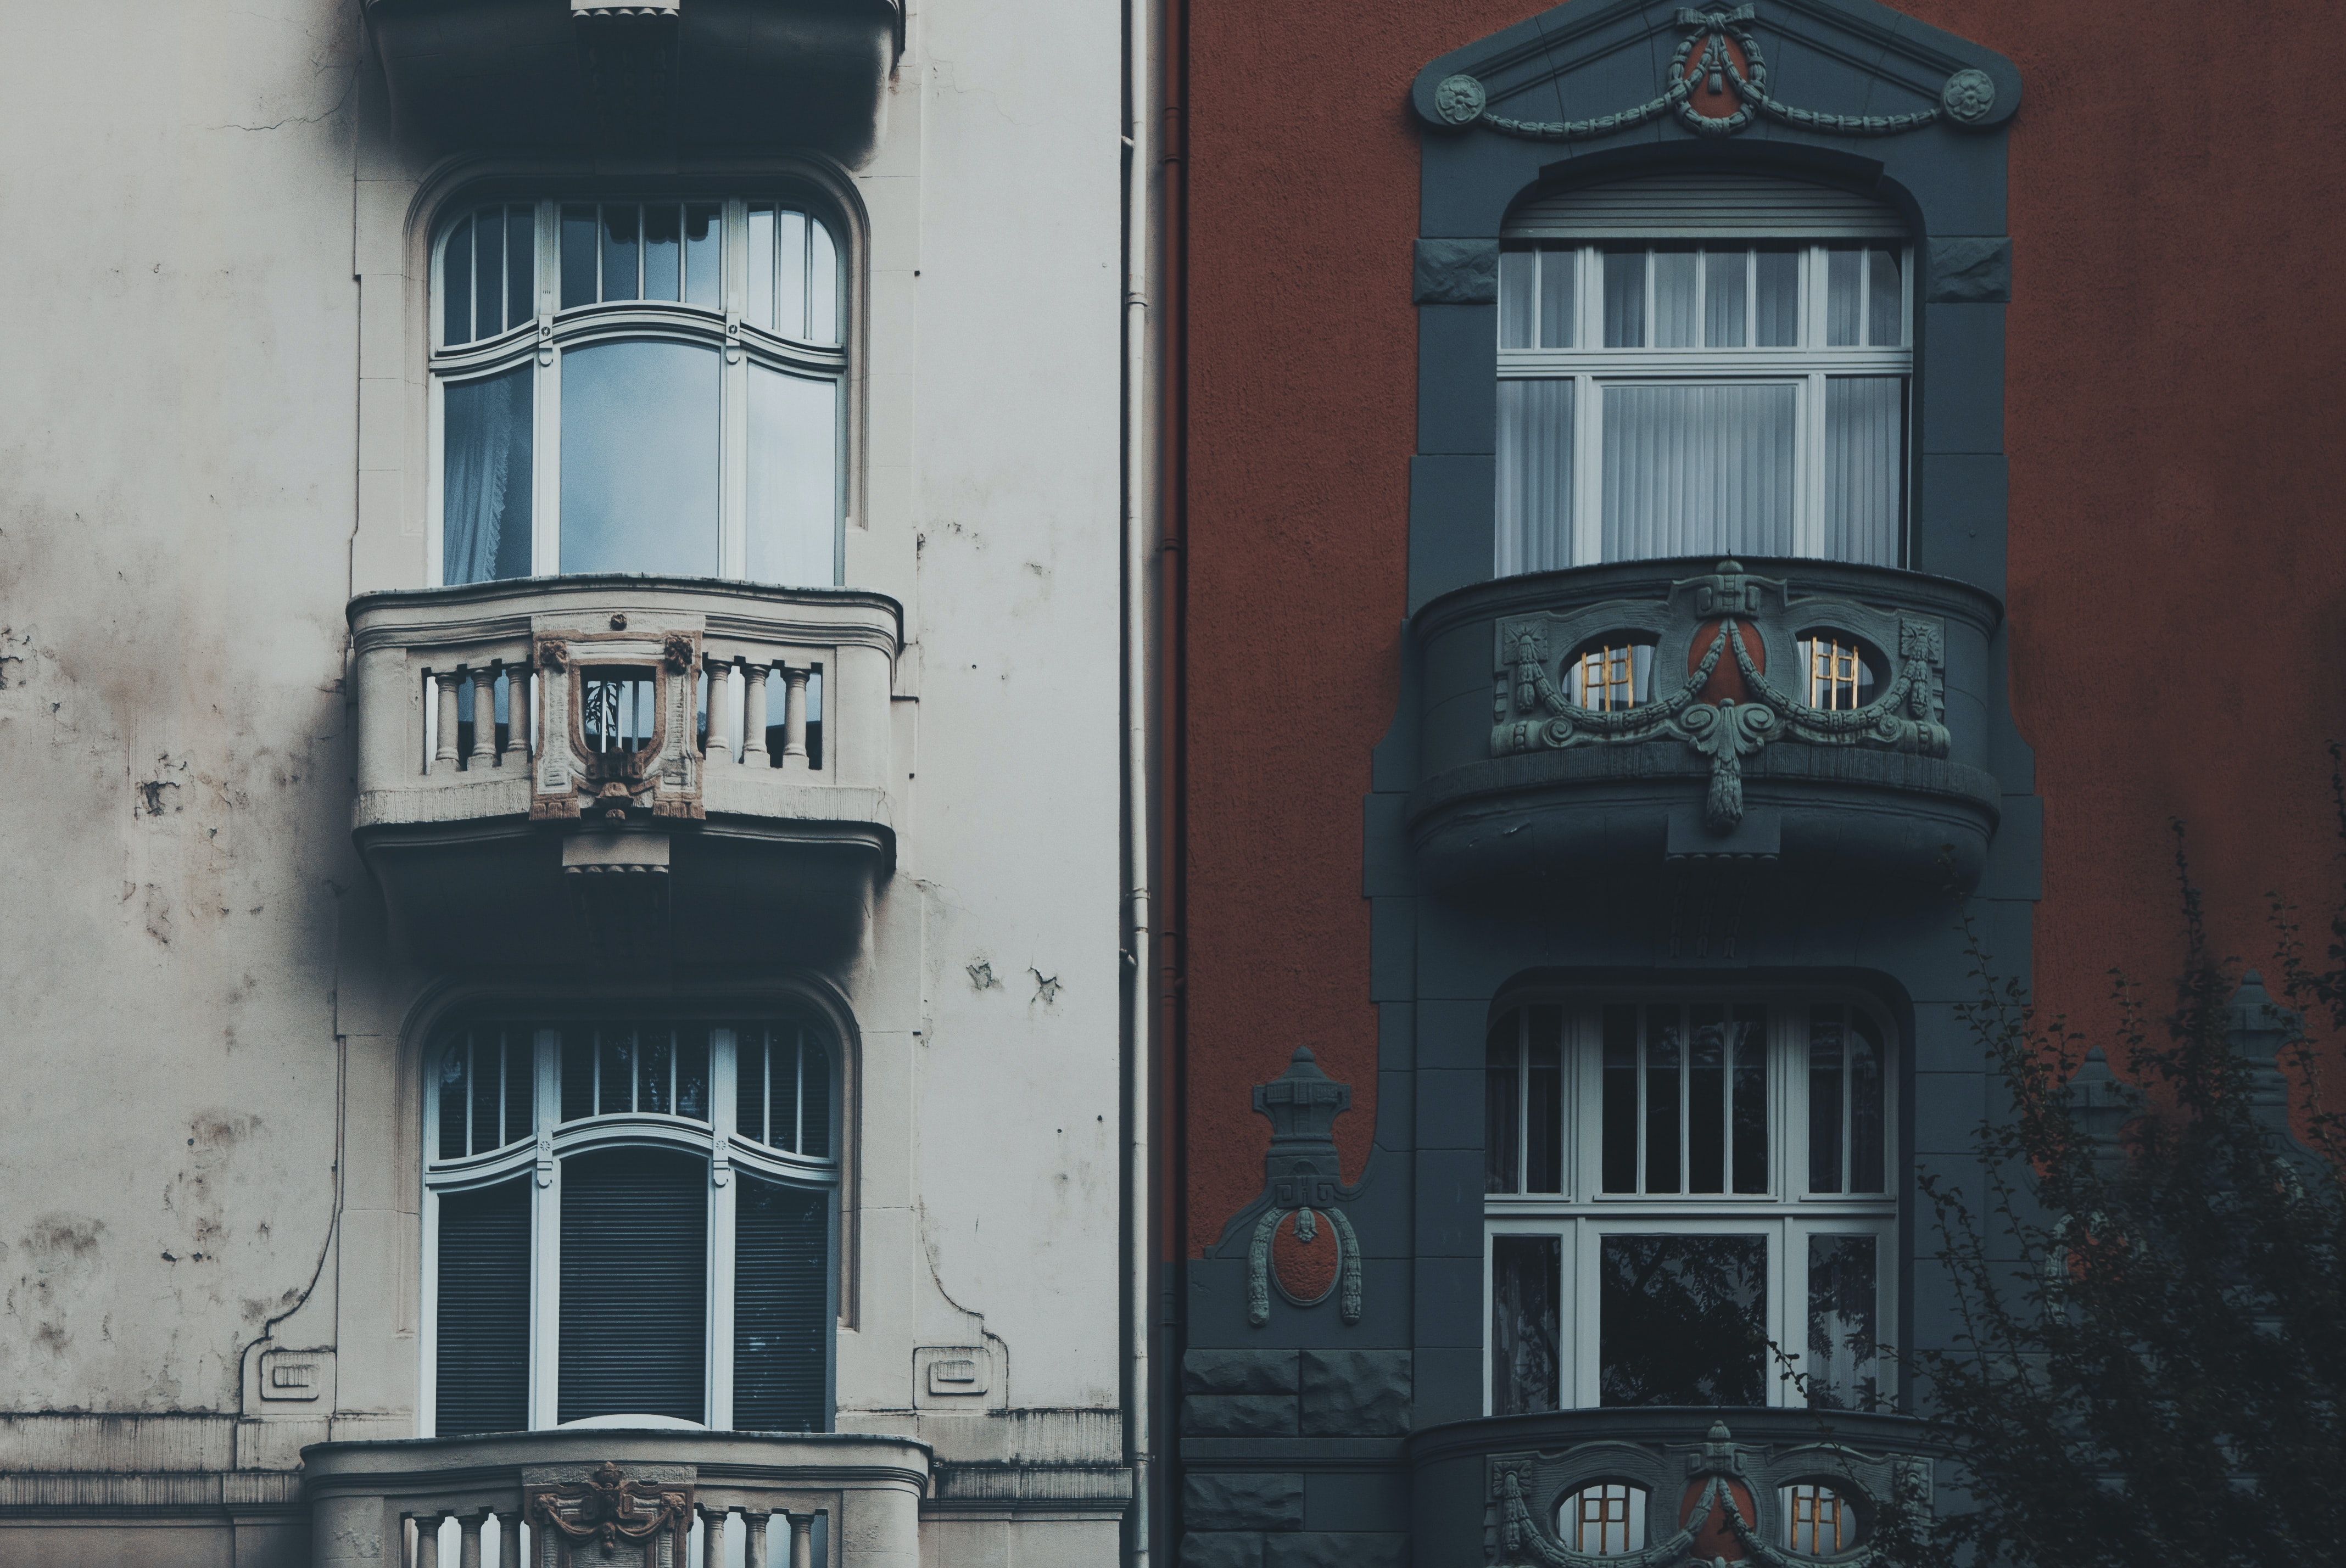 closed glass balcony doors of two buildings